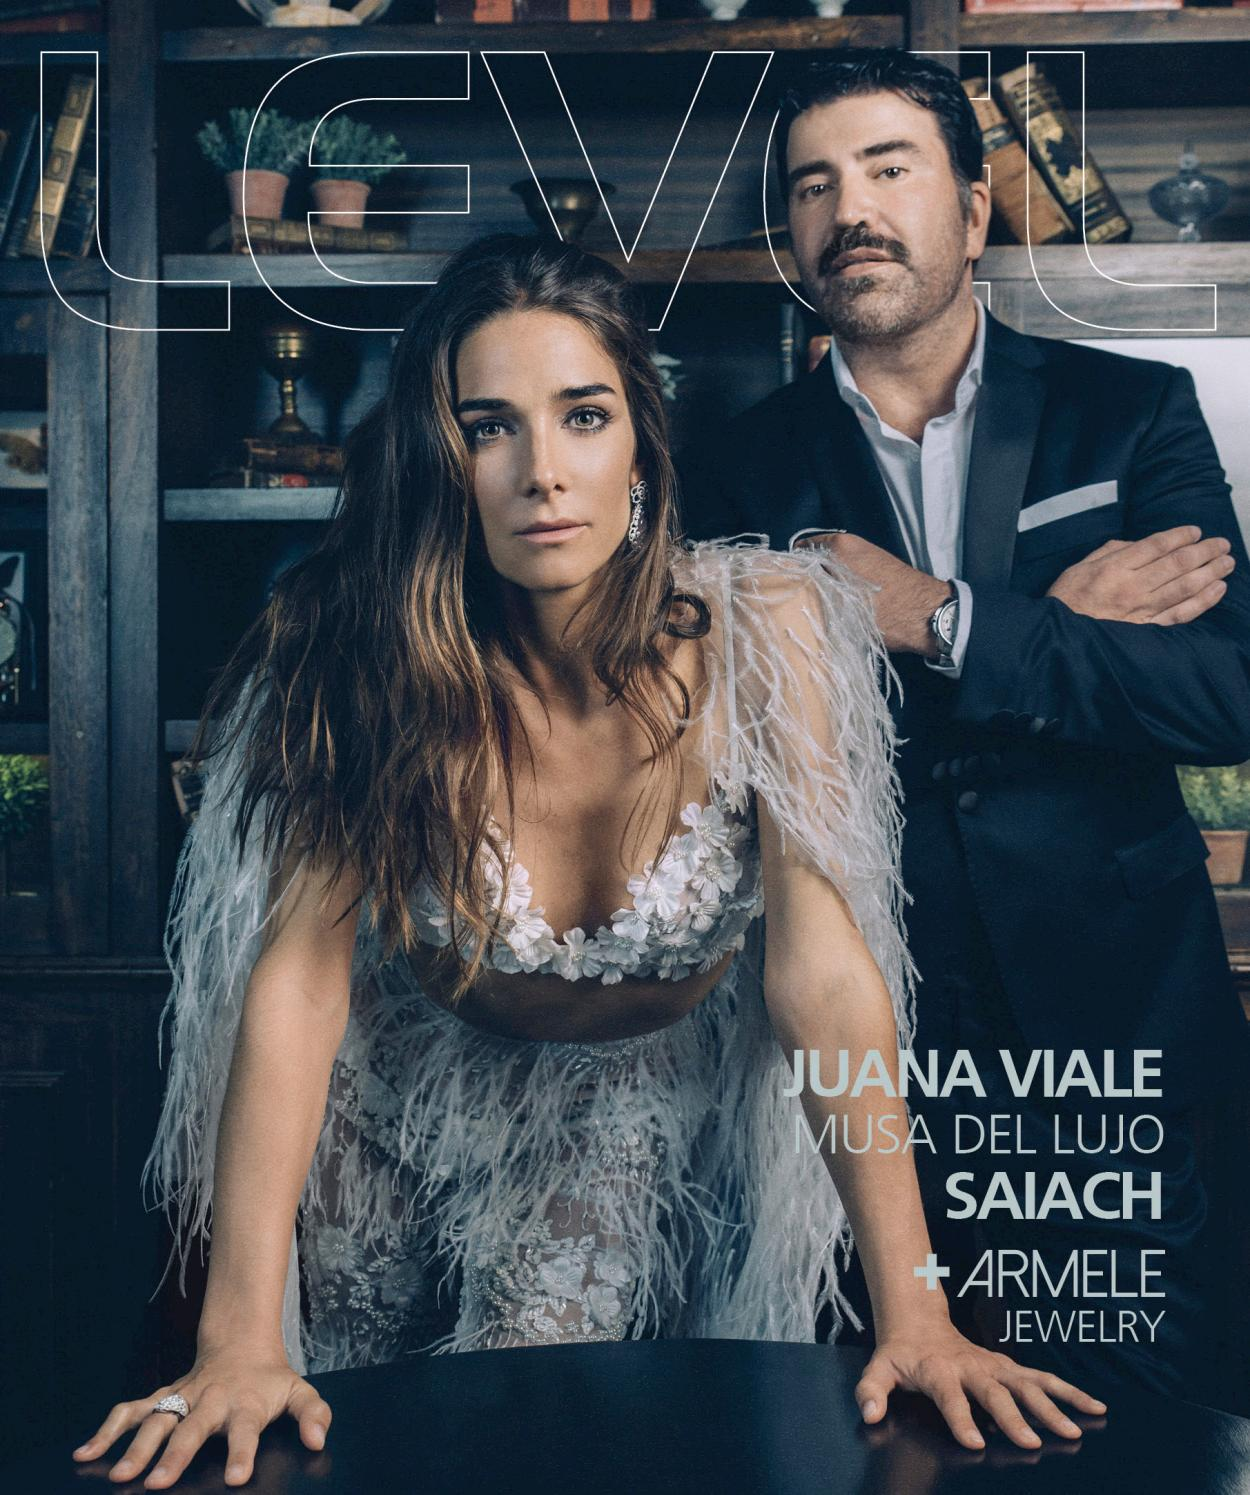 Level Lujo 2019 by Revista Level - issuu c42c7407bda